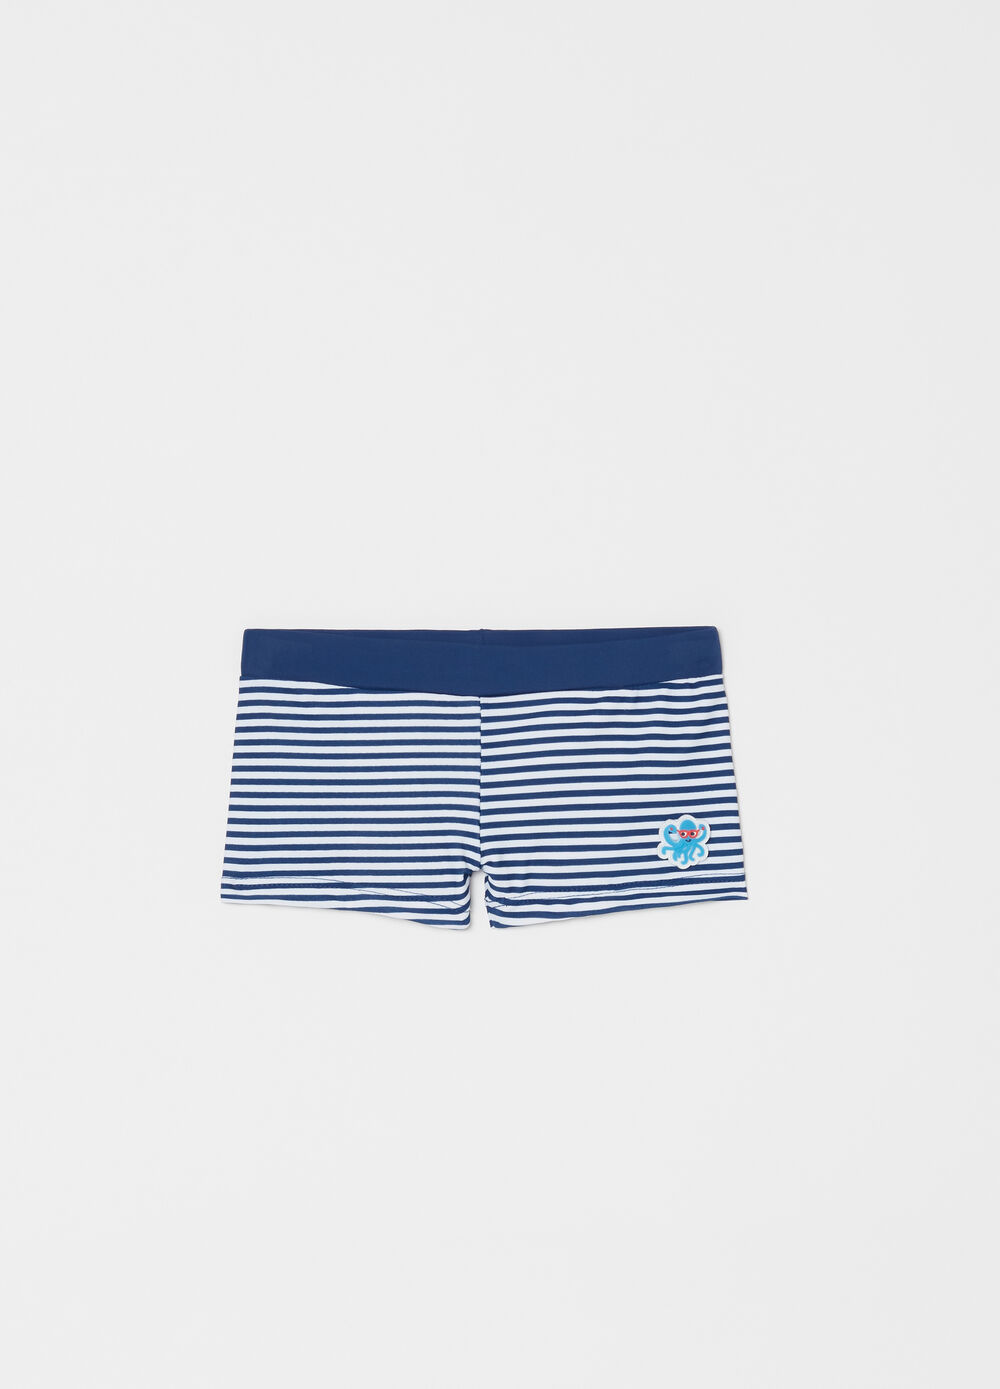 Stretch swim boxer shorts with striped pattern